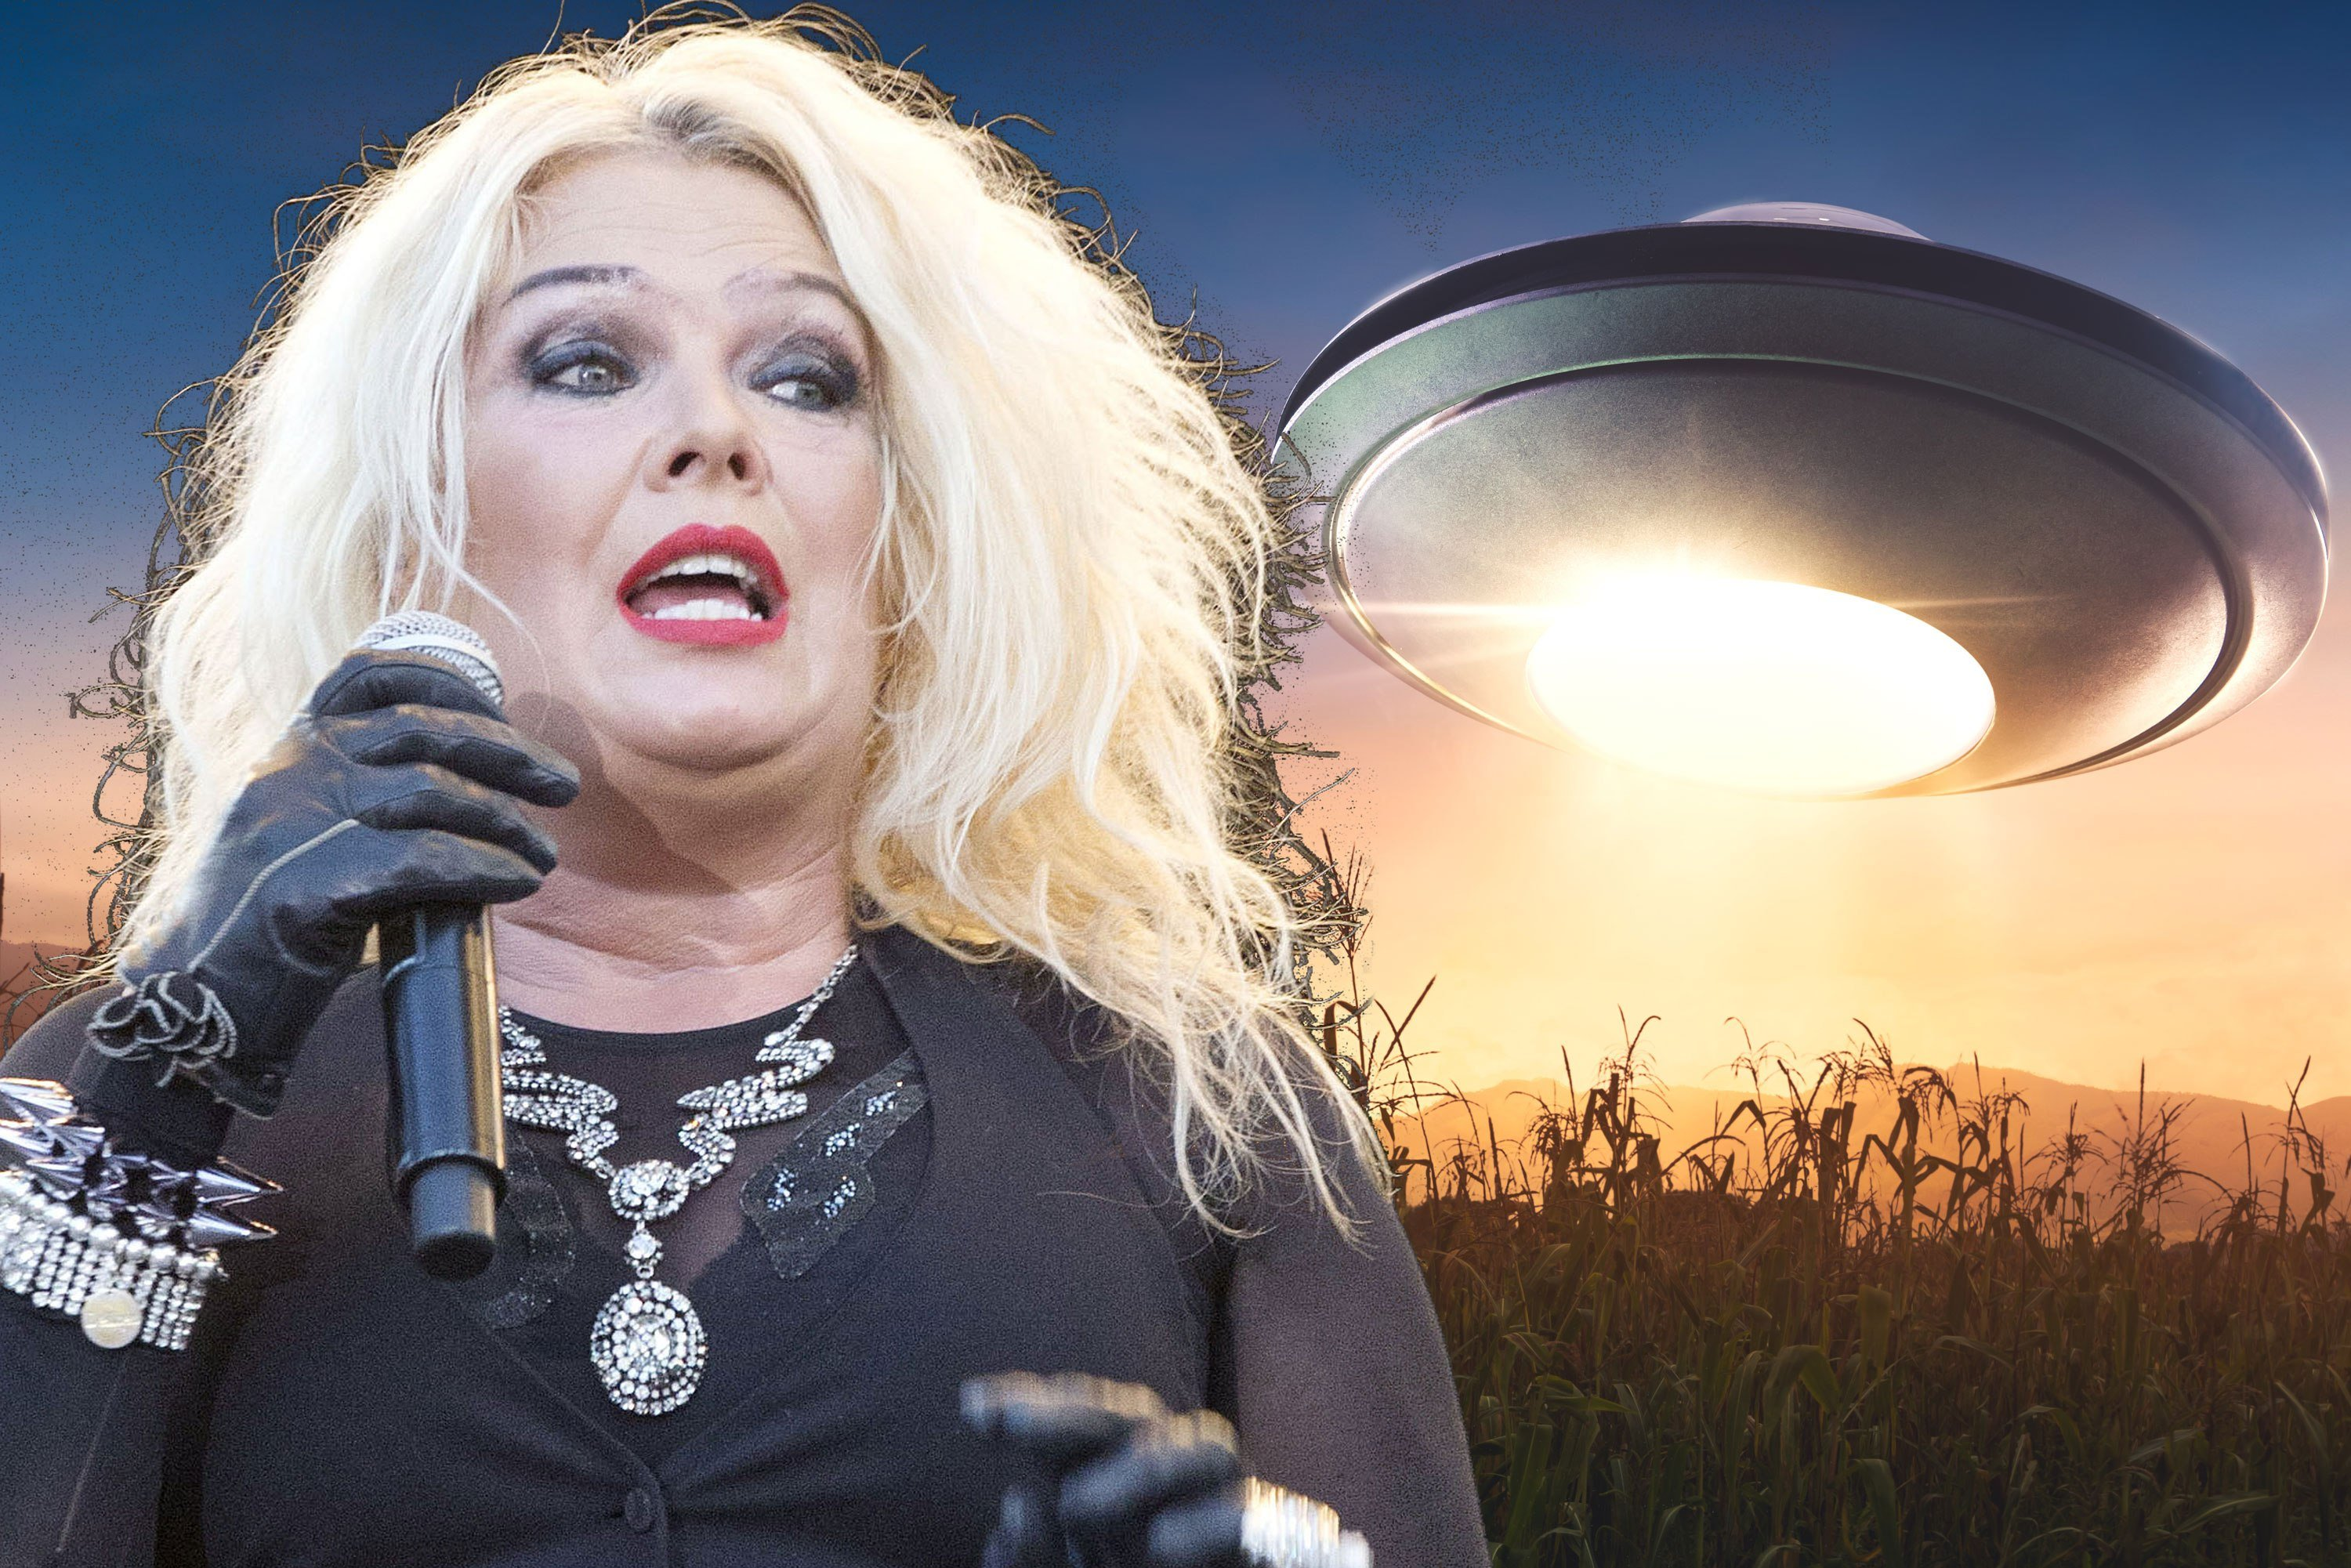 'Kids in America' singer returns to music because of UFOs